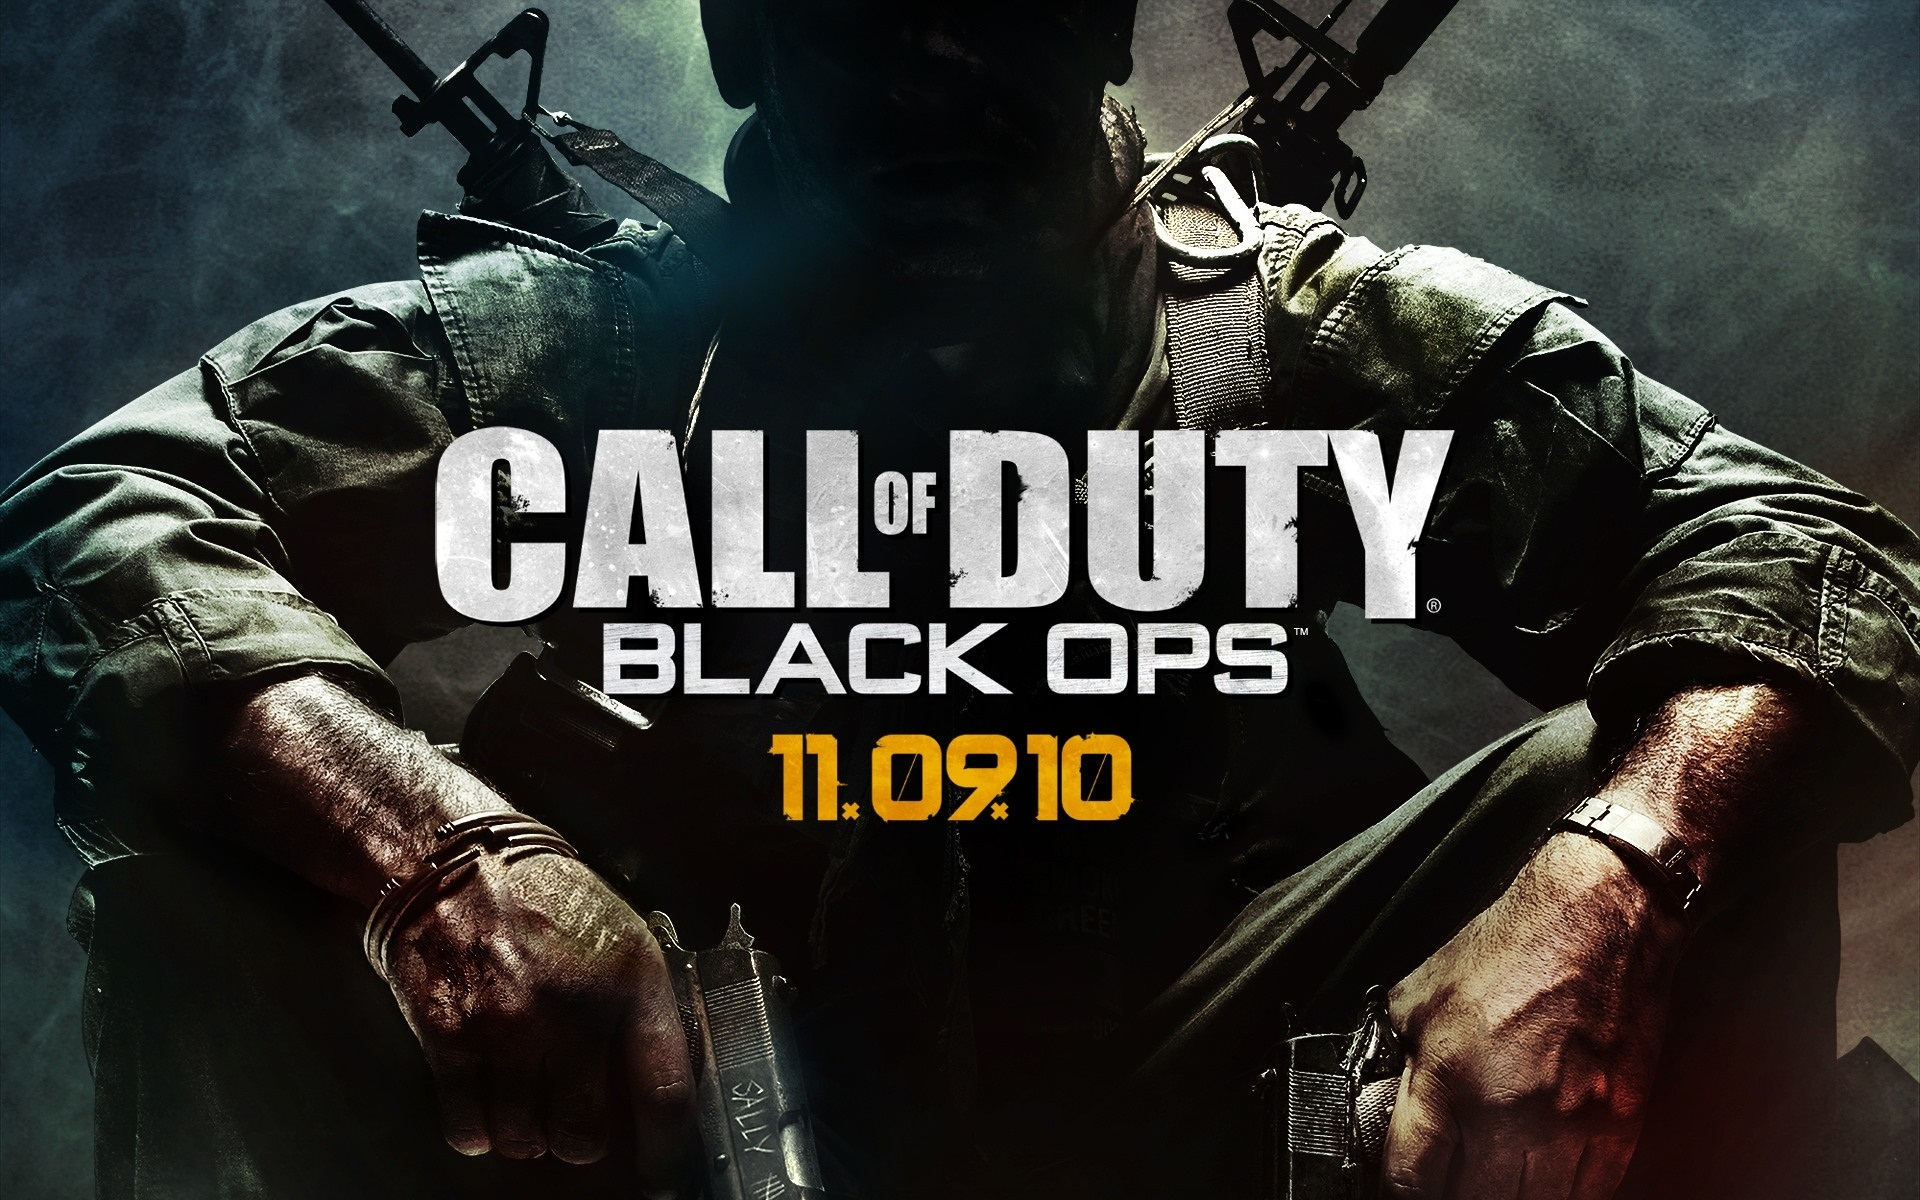 BlackOps